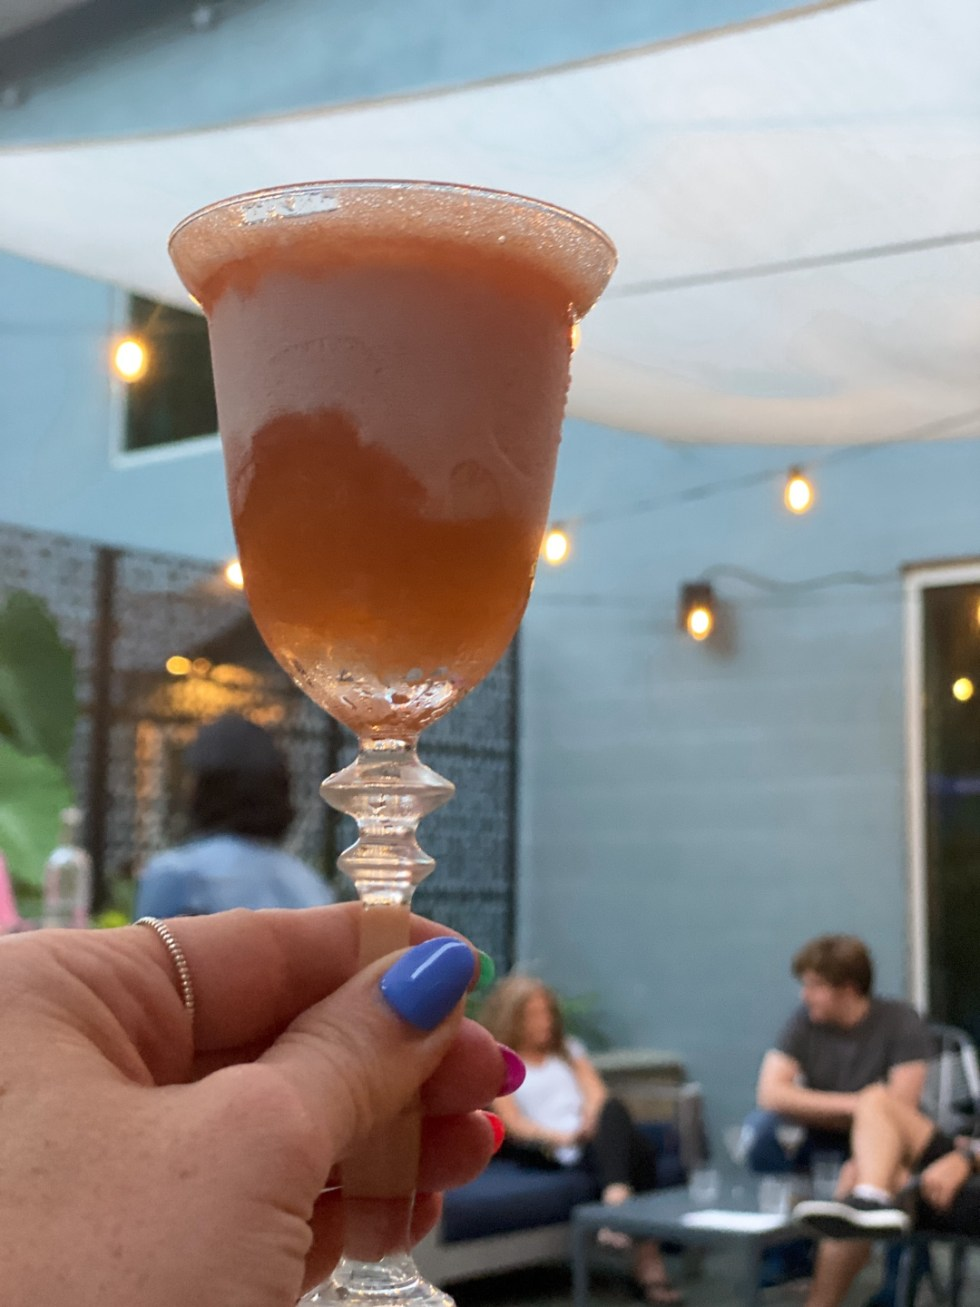 23 Awesome Things To Do in Durham - I'm Fixin' To - @imfixintoblog | Things to do in Durham by popular NC travel blog, I'm Fixin' To: image of a woman holding a cocktail drink in her hand.